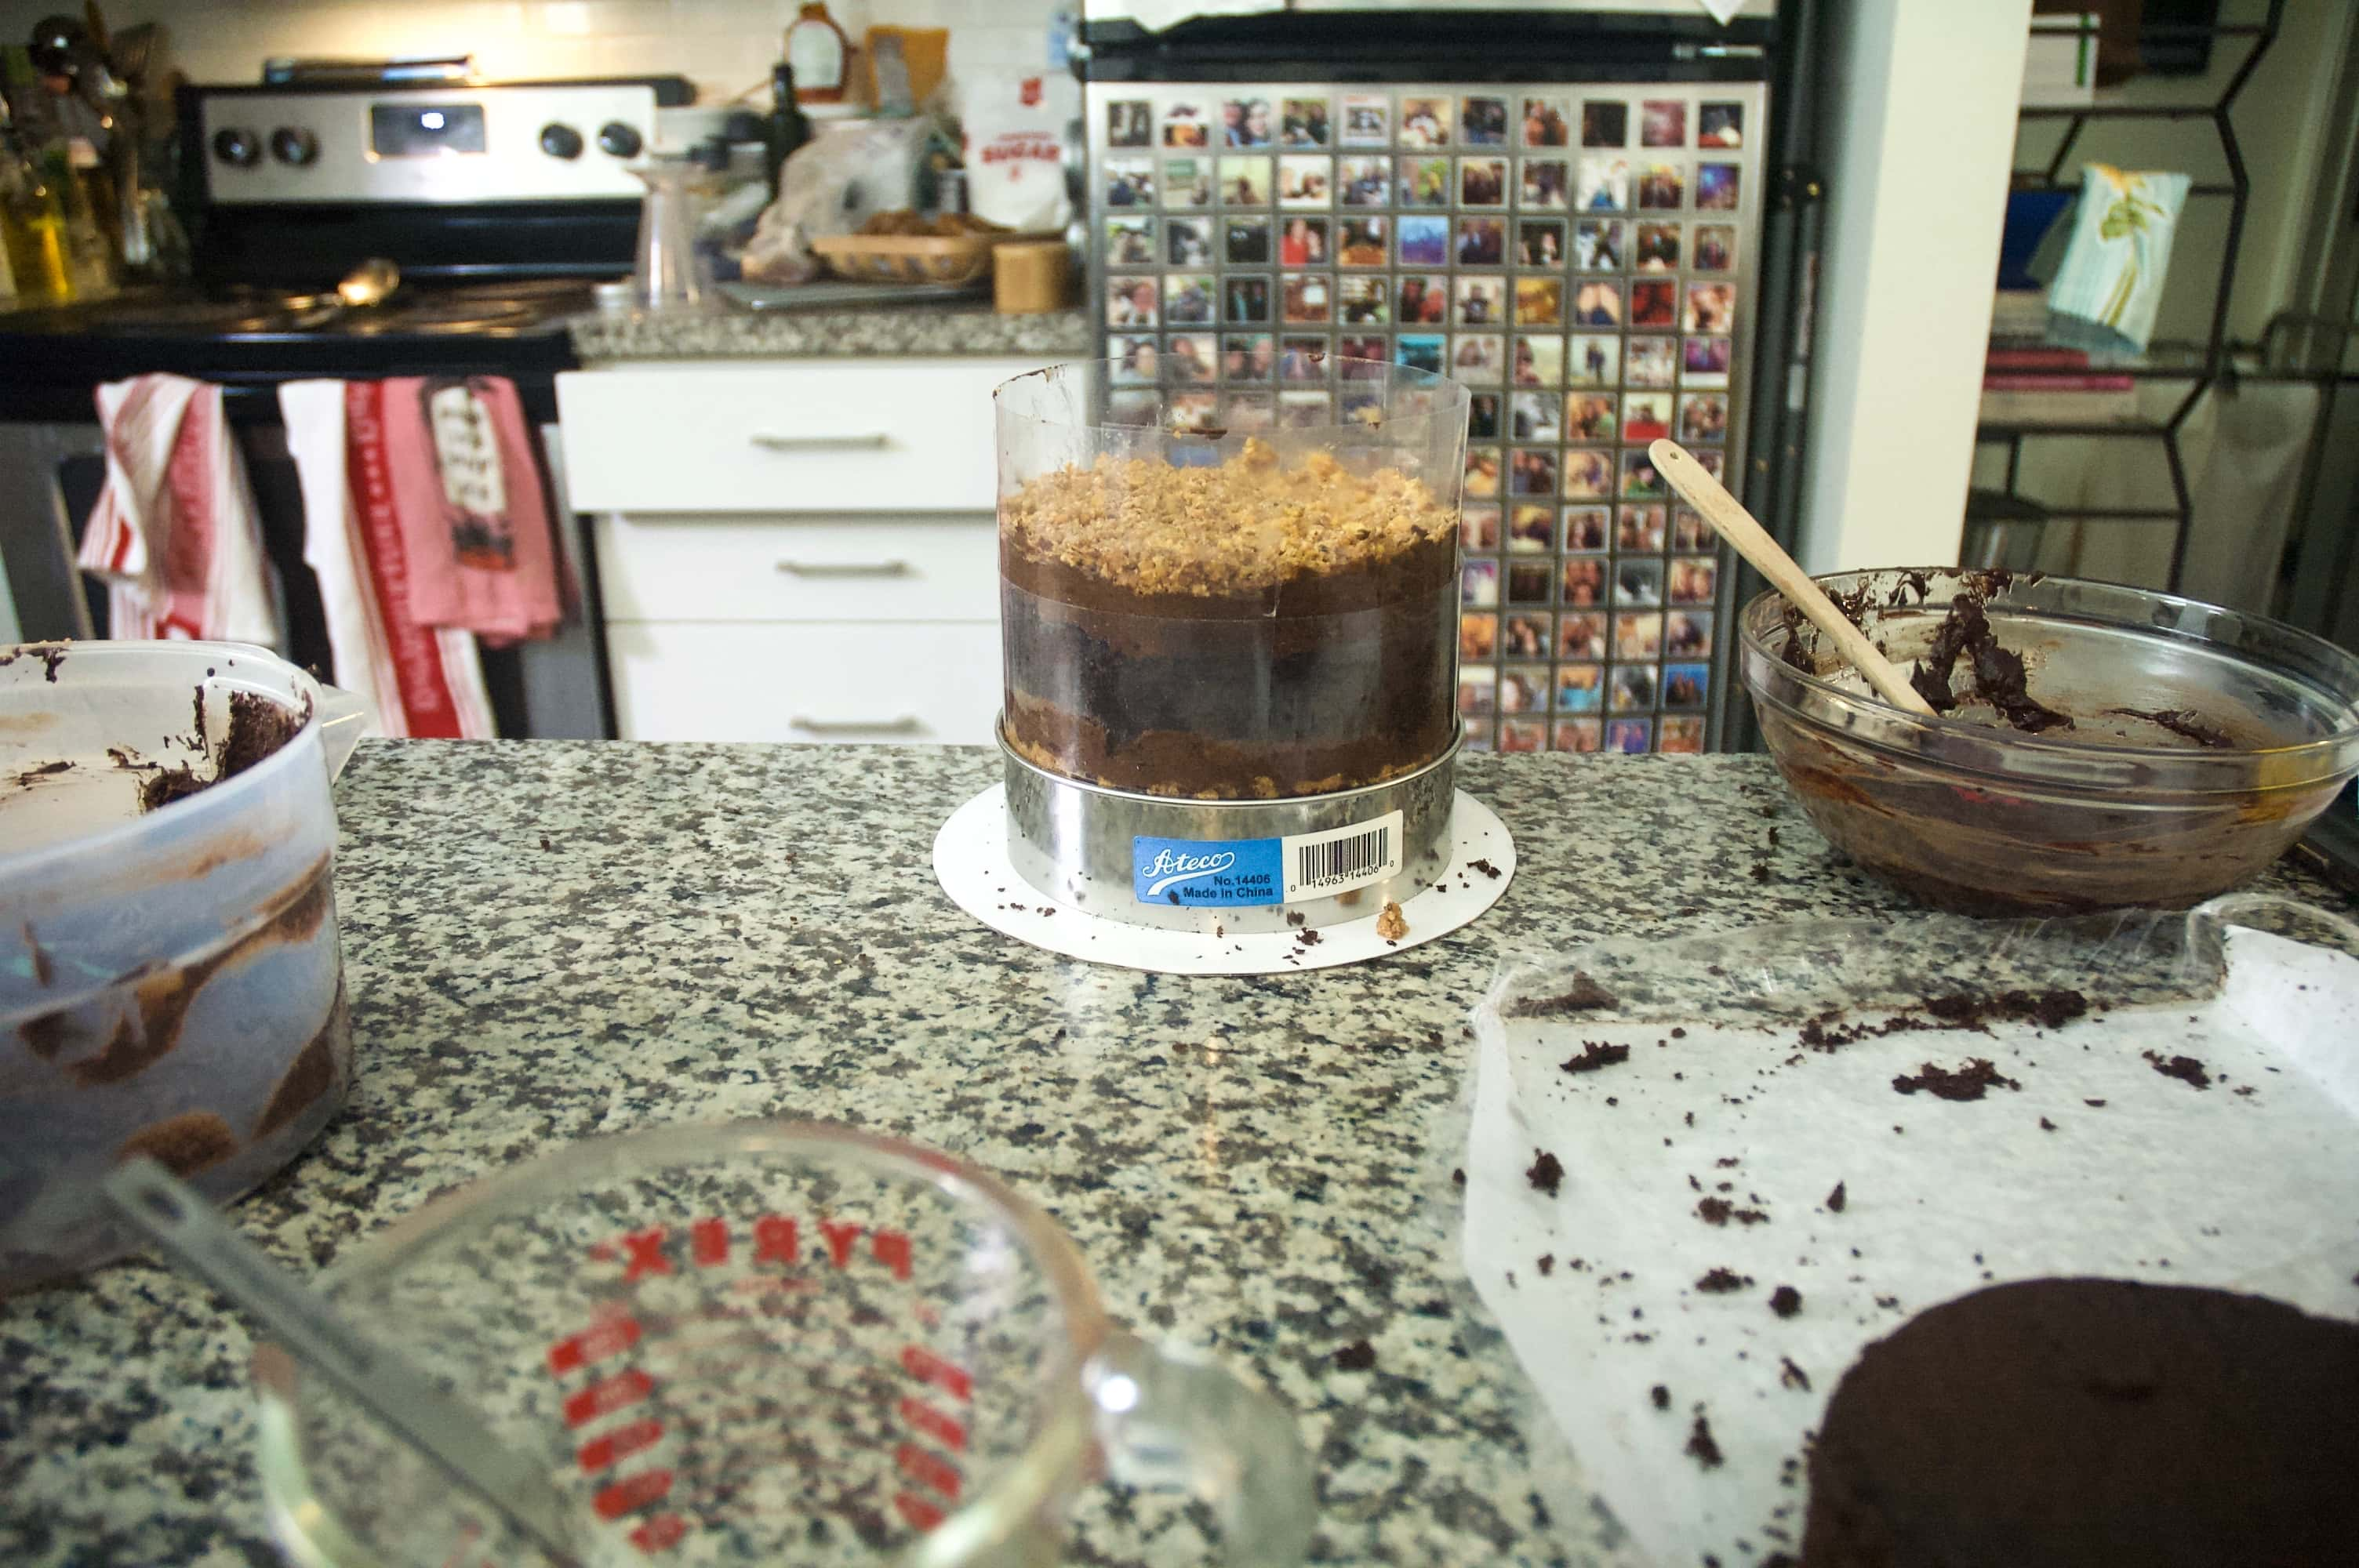 This image is the same as the previous one, only a second layer of cake has been added, along with another layer of frosting and another layer of hazelnut crunch. A second sheet of acetate has been added to give more room to build the cake even taller.